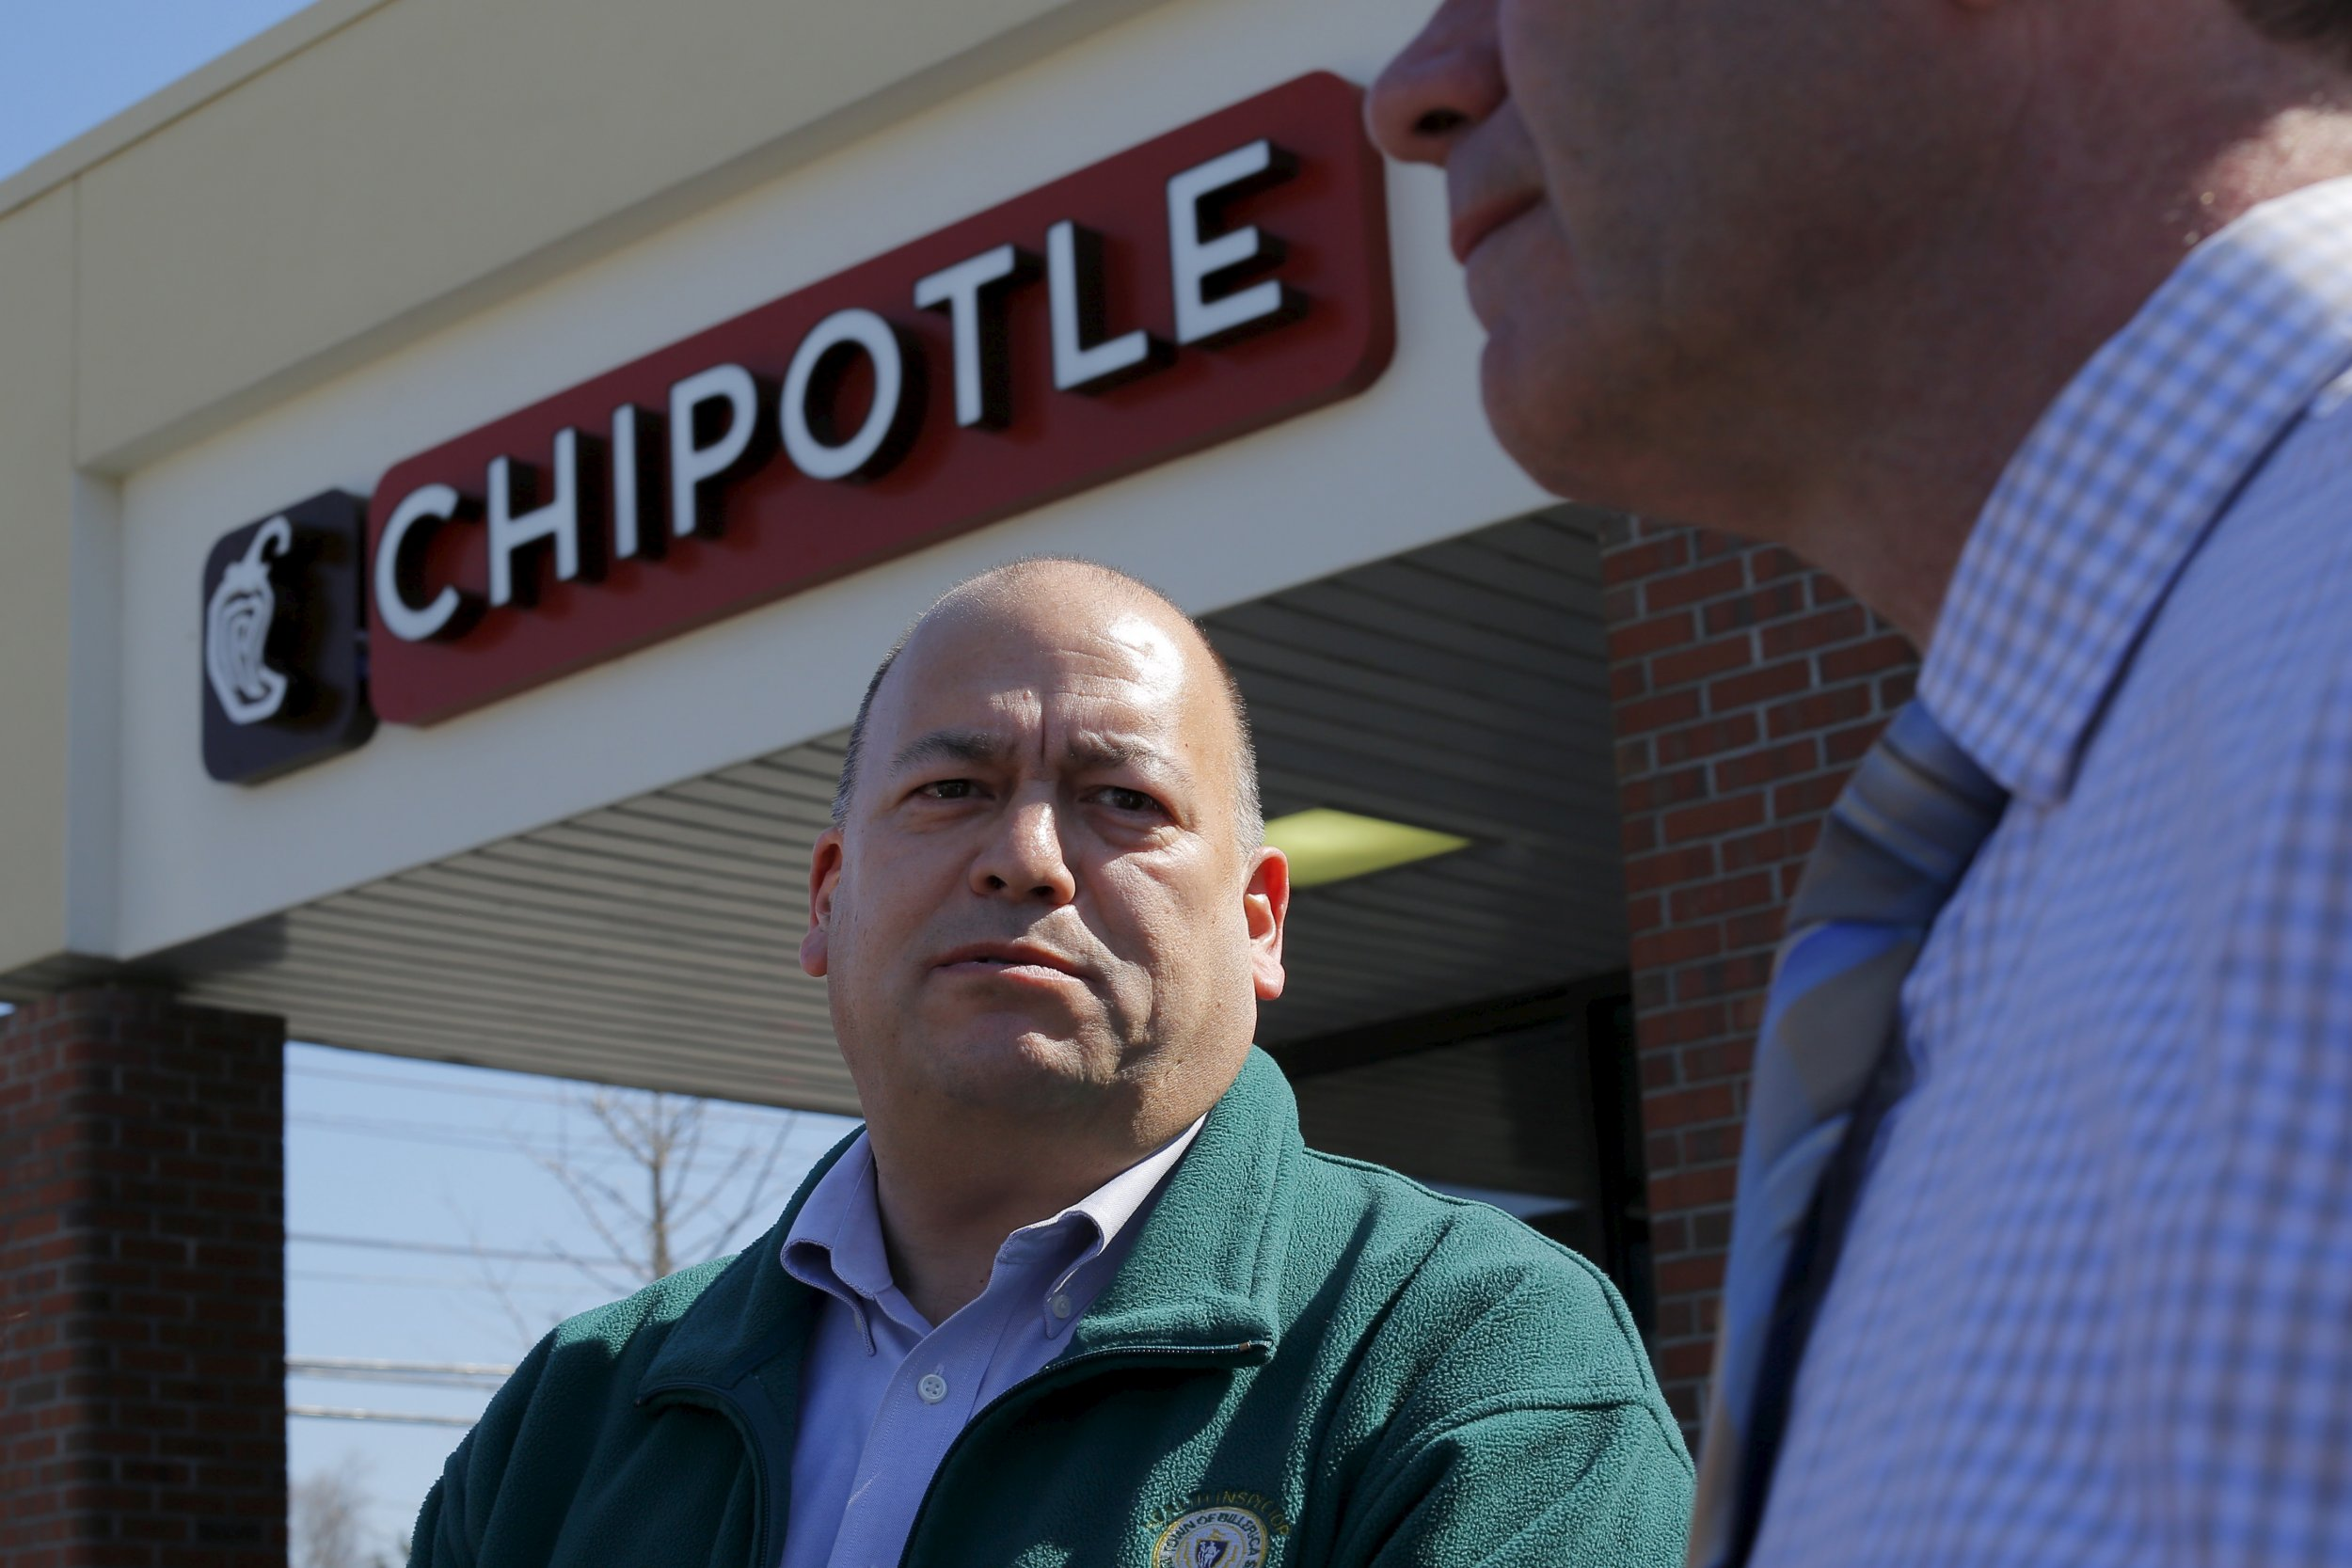 Chipolte to reopen store in norovirus scare